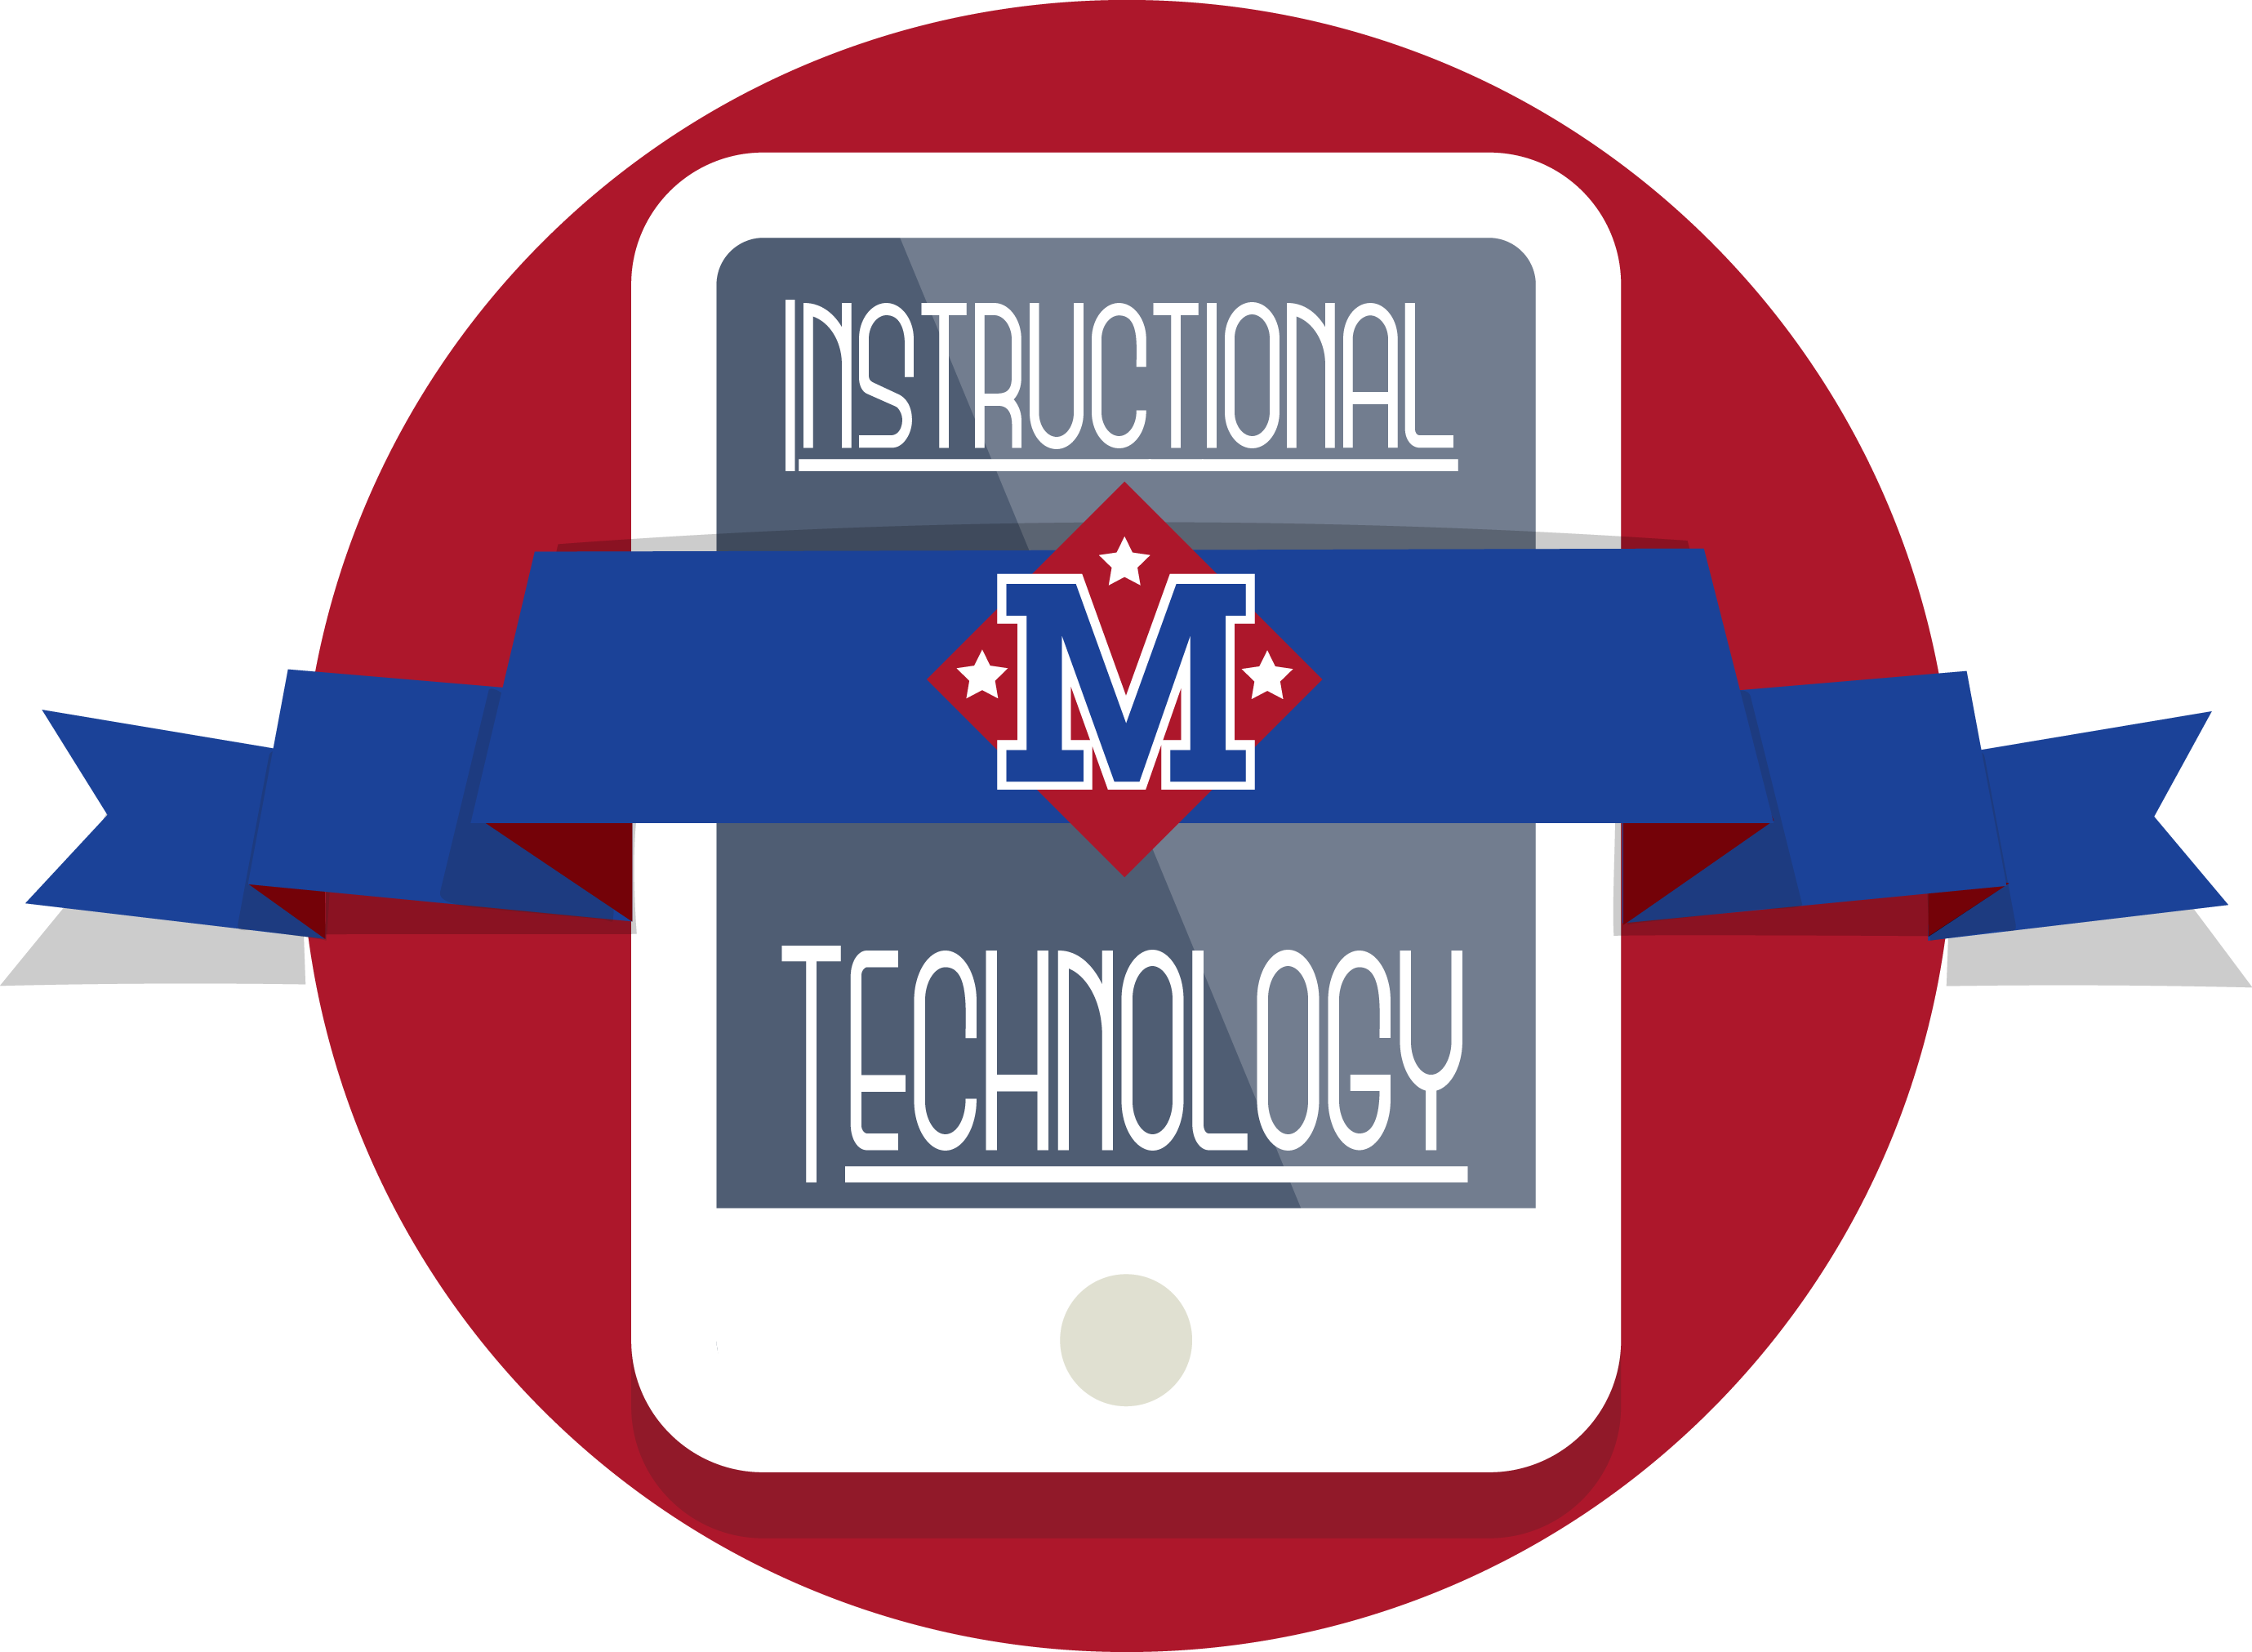 Technology clipart instructional technology. Millington municipal schools acknowledges